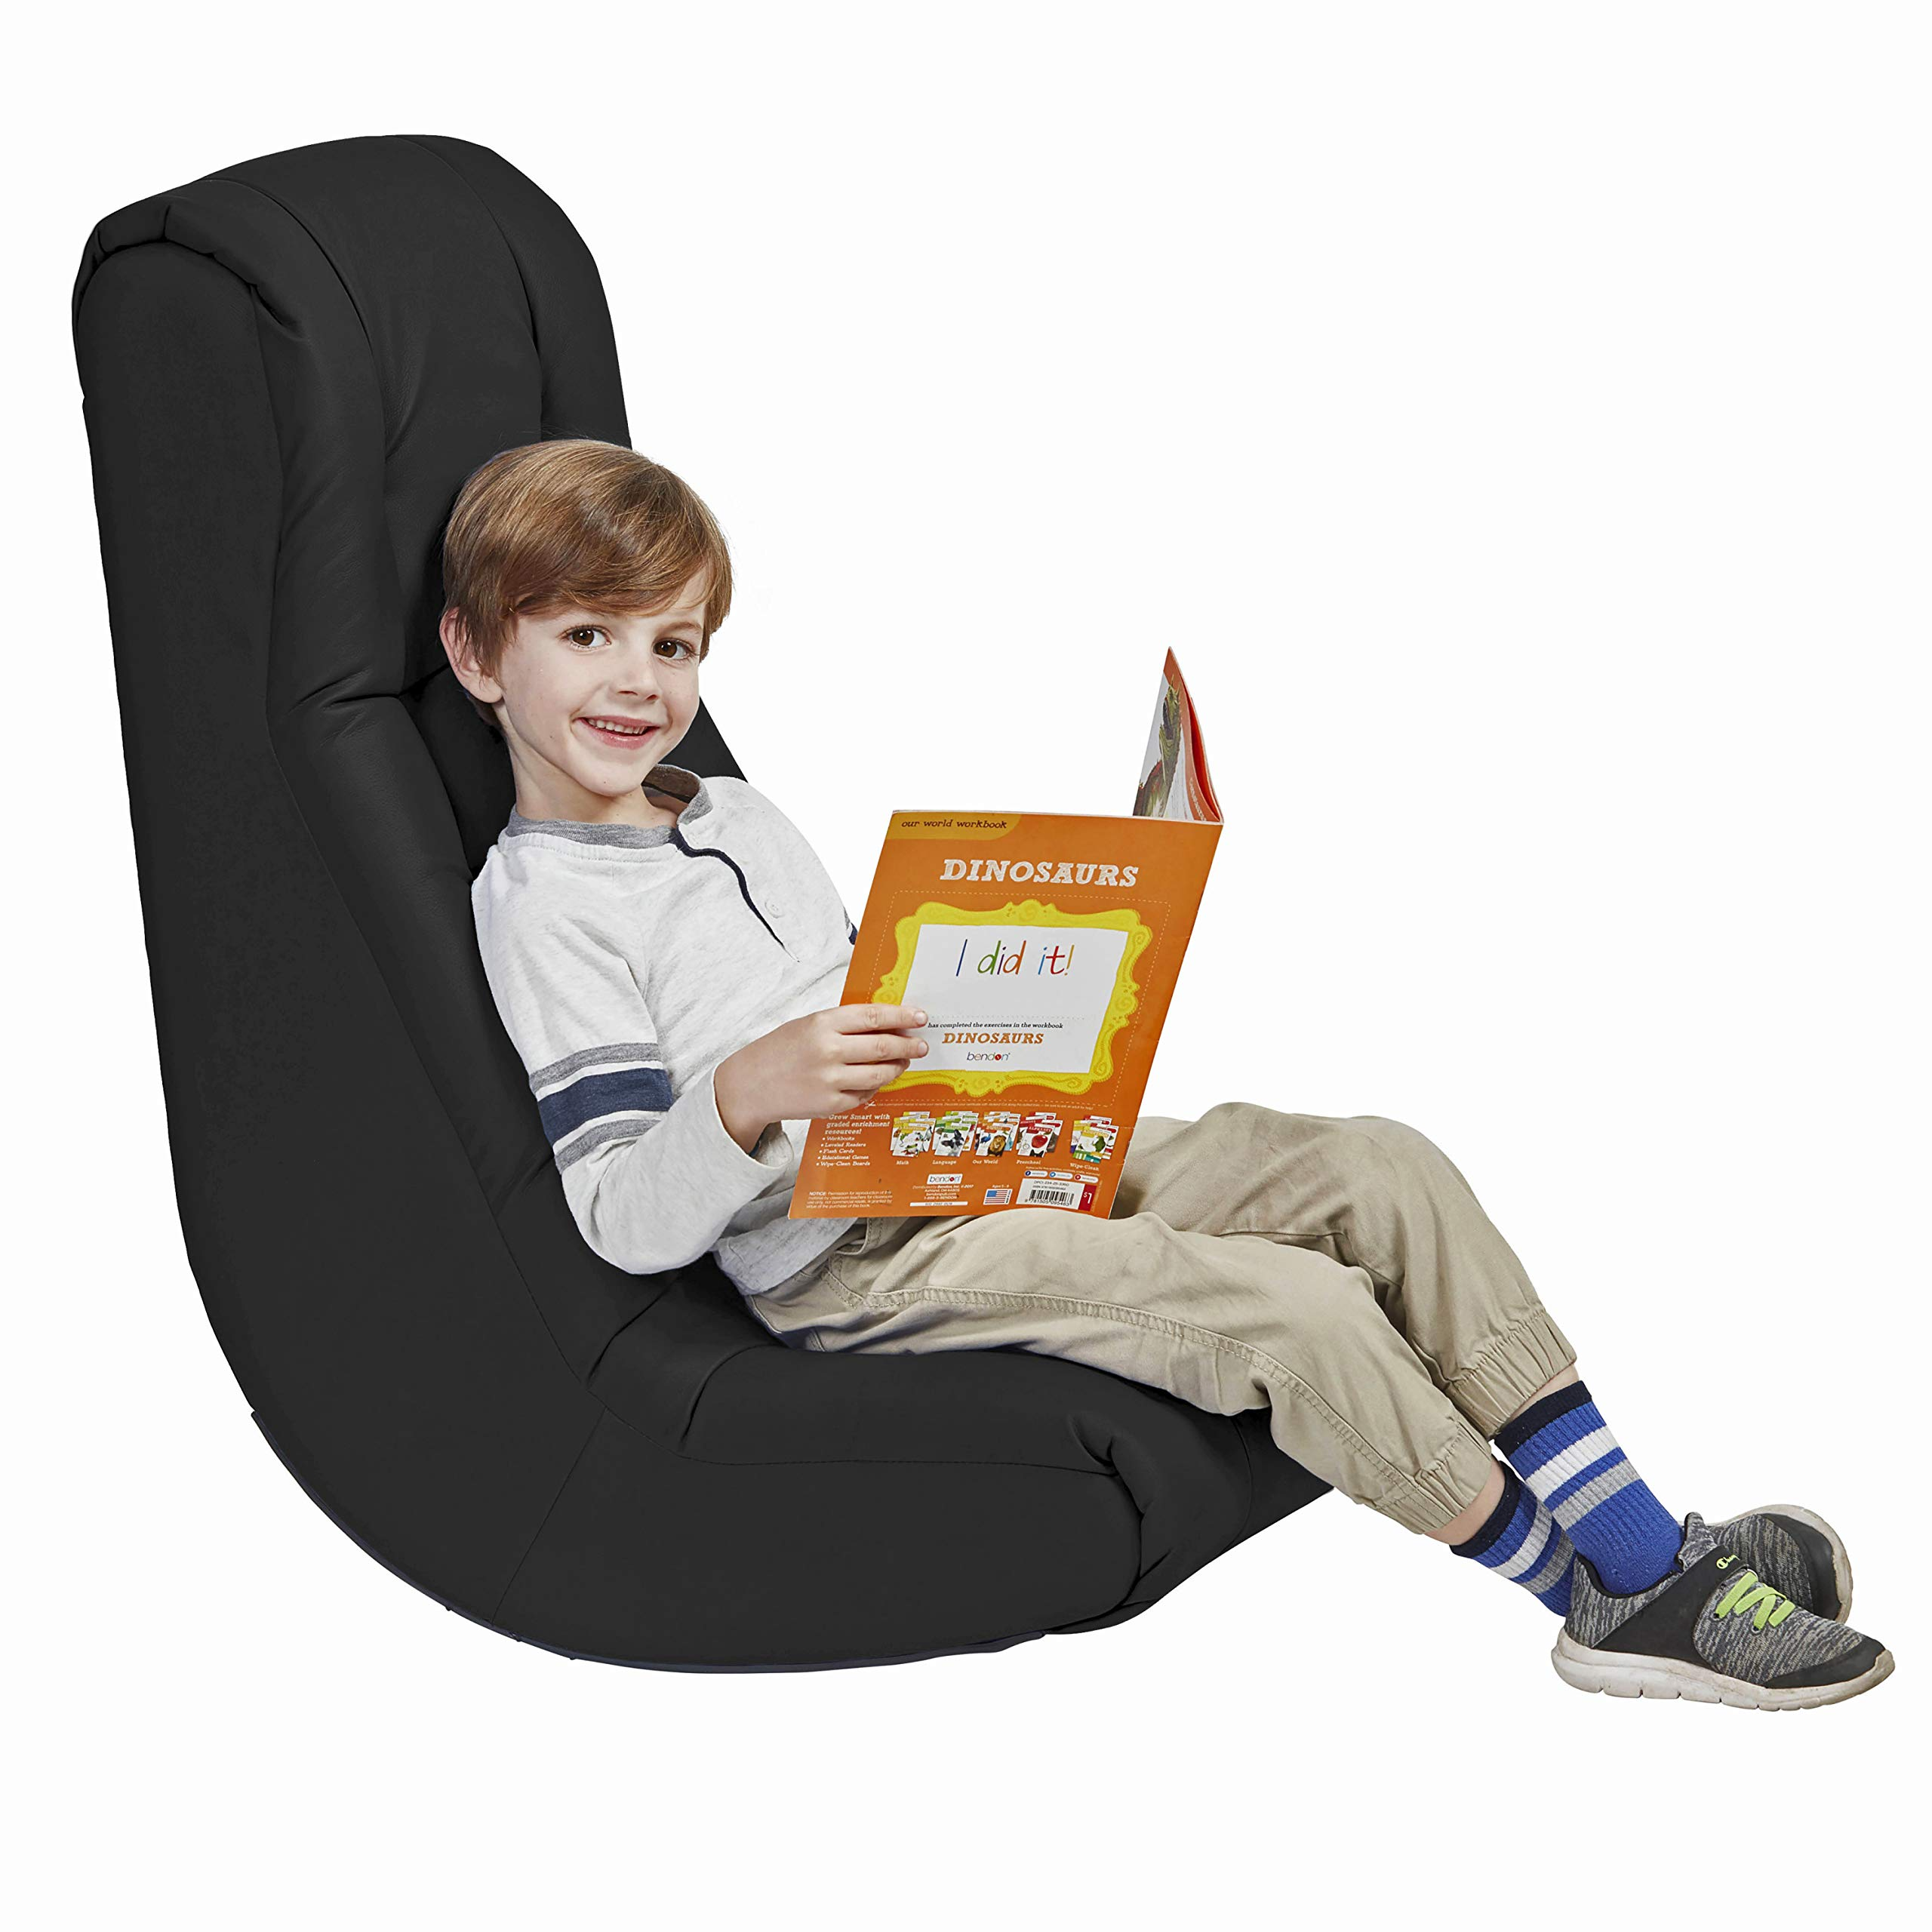 Soft Floor Rocker - Cushioned Ground Chair for Kids Teens and Adults - Great for Reading, Gaming, Meditating, TV - Black by Factory Direct Partners